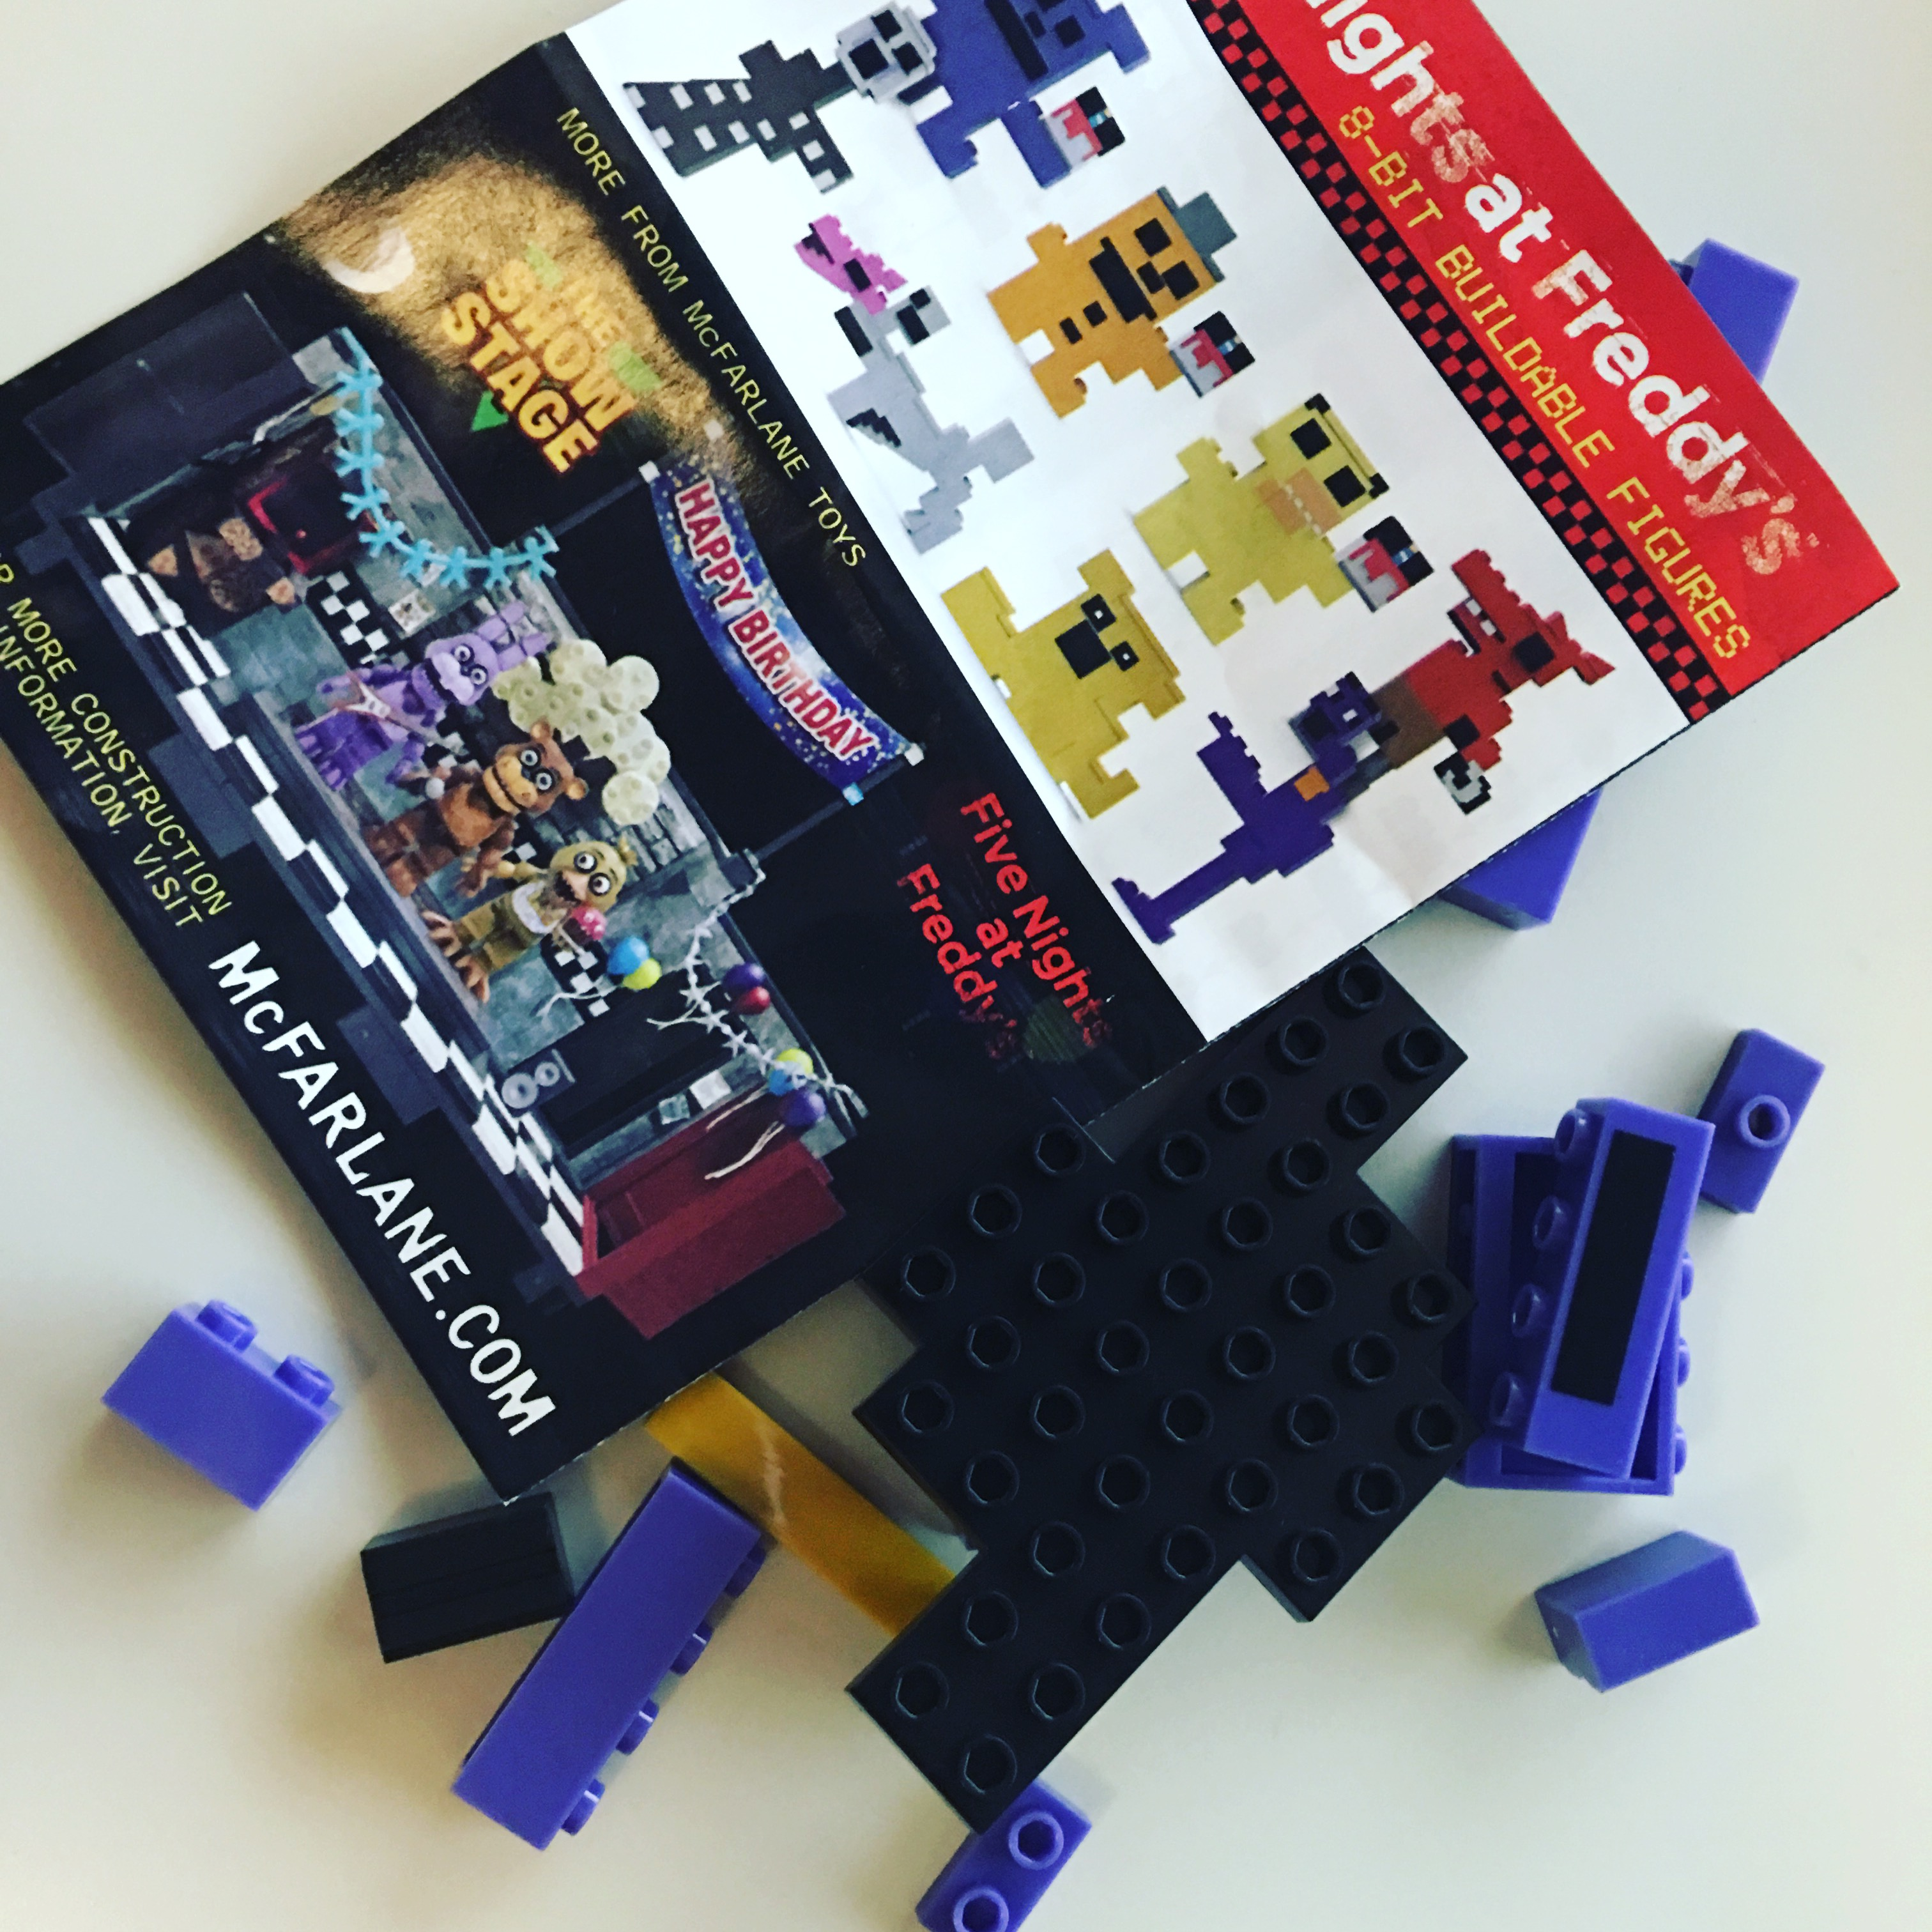 More five nights at freddy s construction sets coming soon - Click Here For More Details On The Five Nights At Freddy S 8 Bit Characters